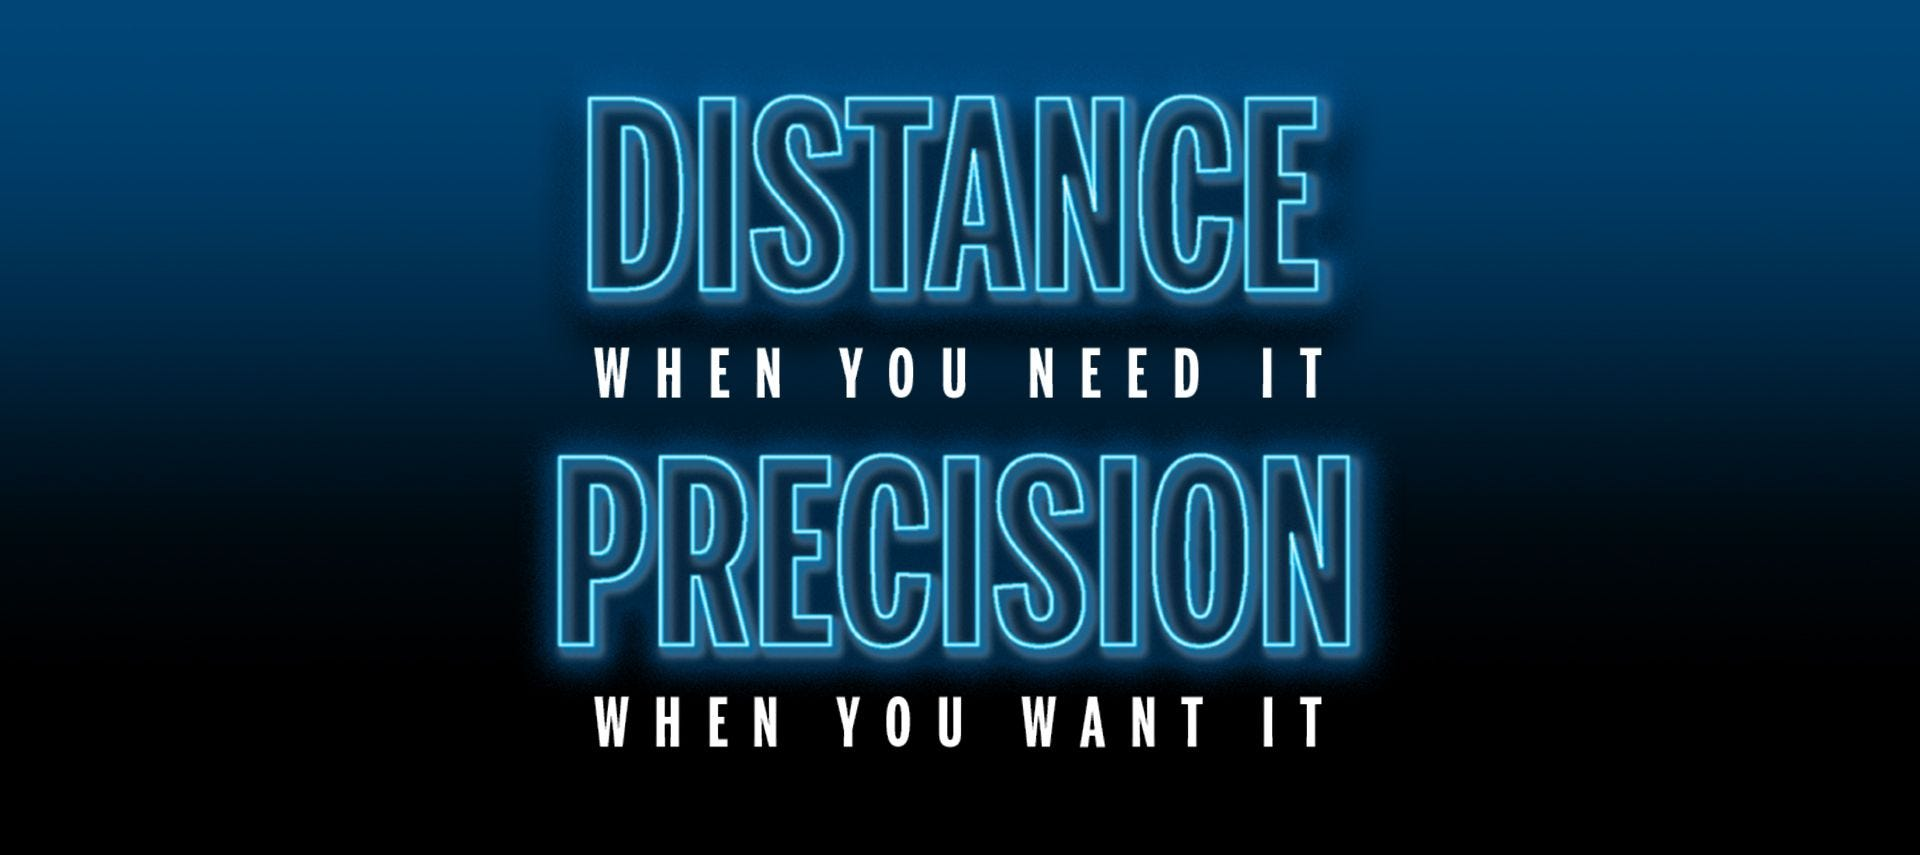 Distance and Precision graphic on blue background